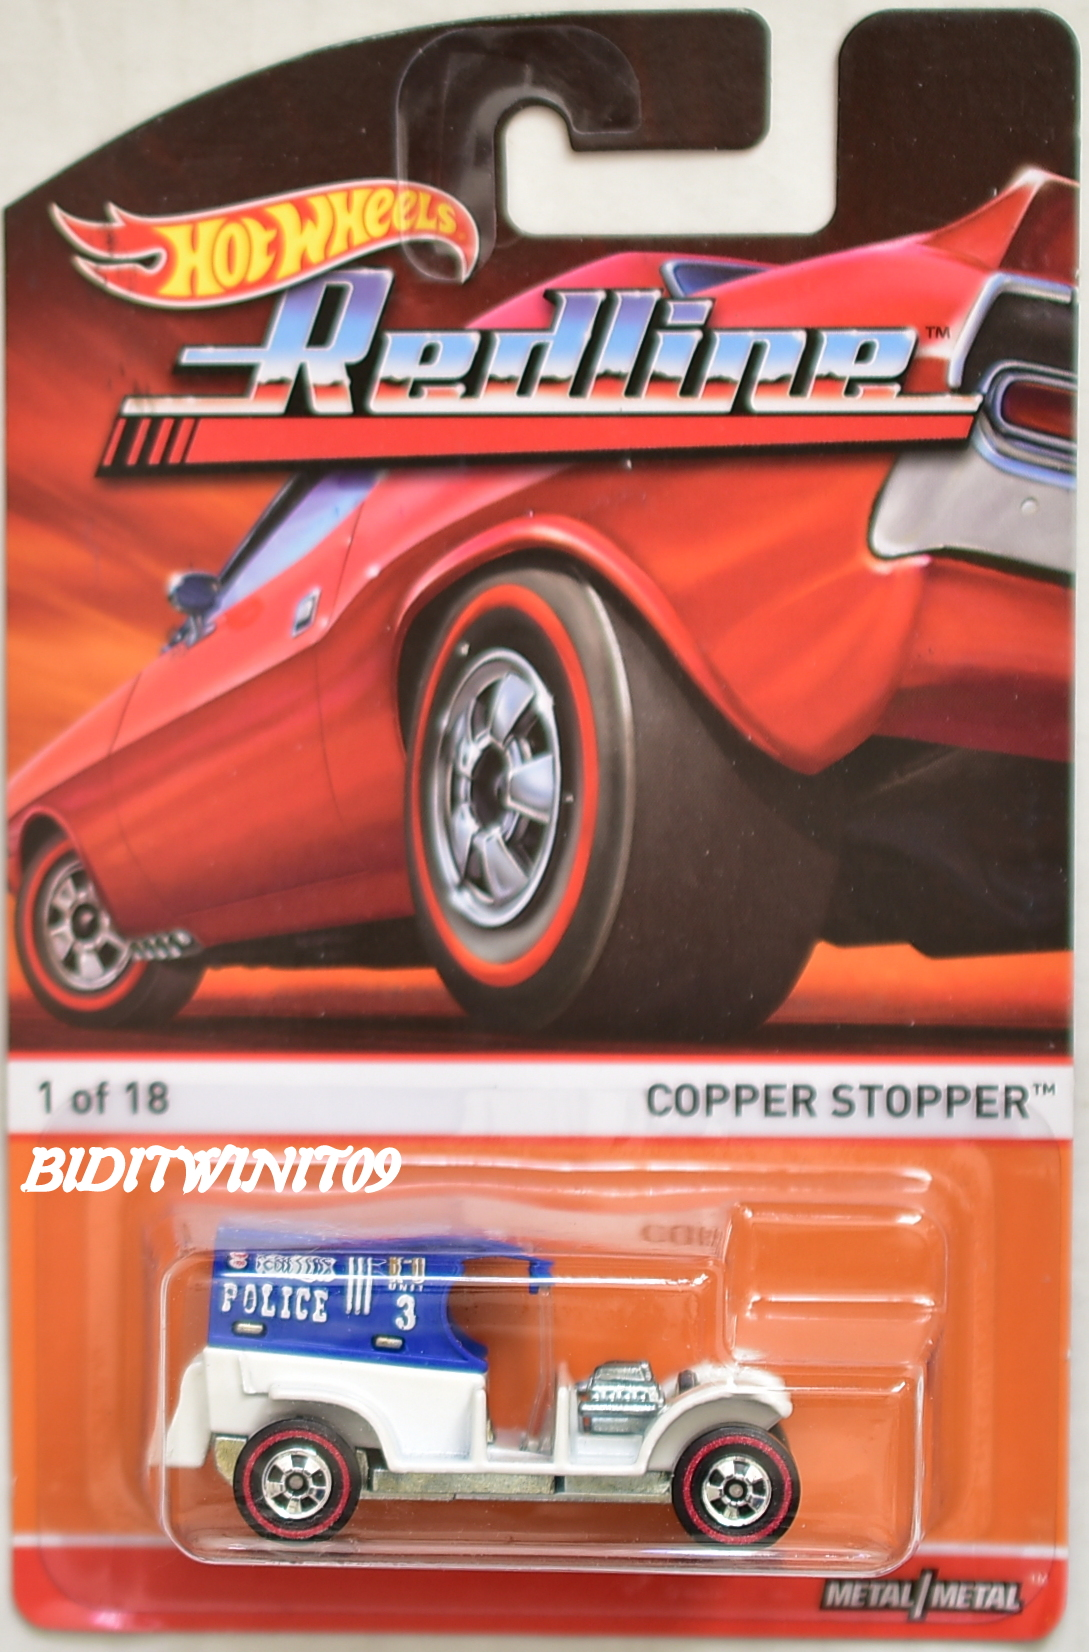 HOT WHEELS 2015 REDLINE COPPER STOPPER #1/18 E+